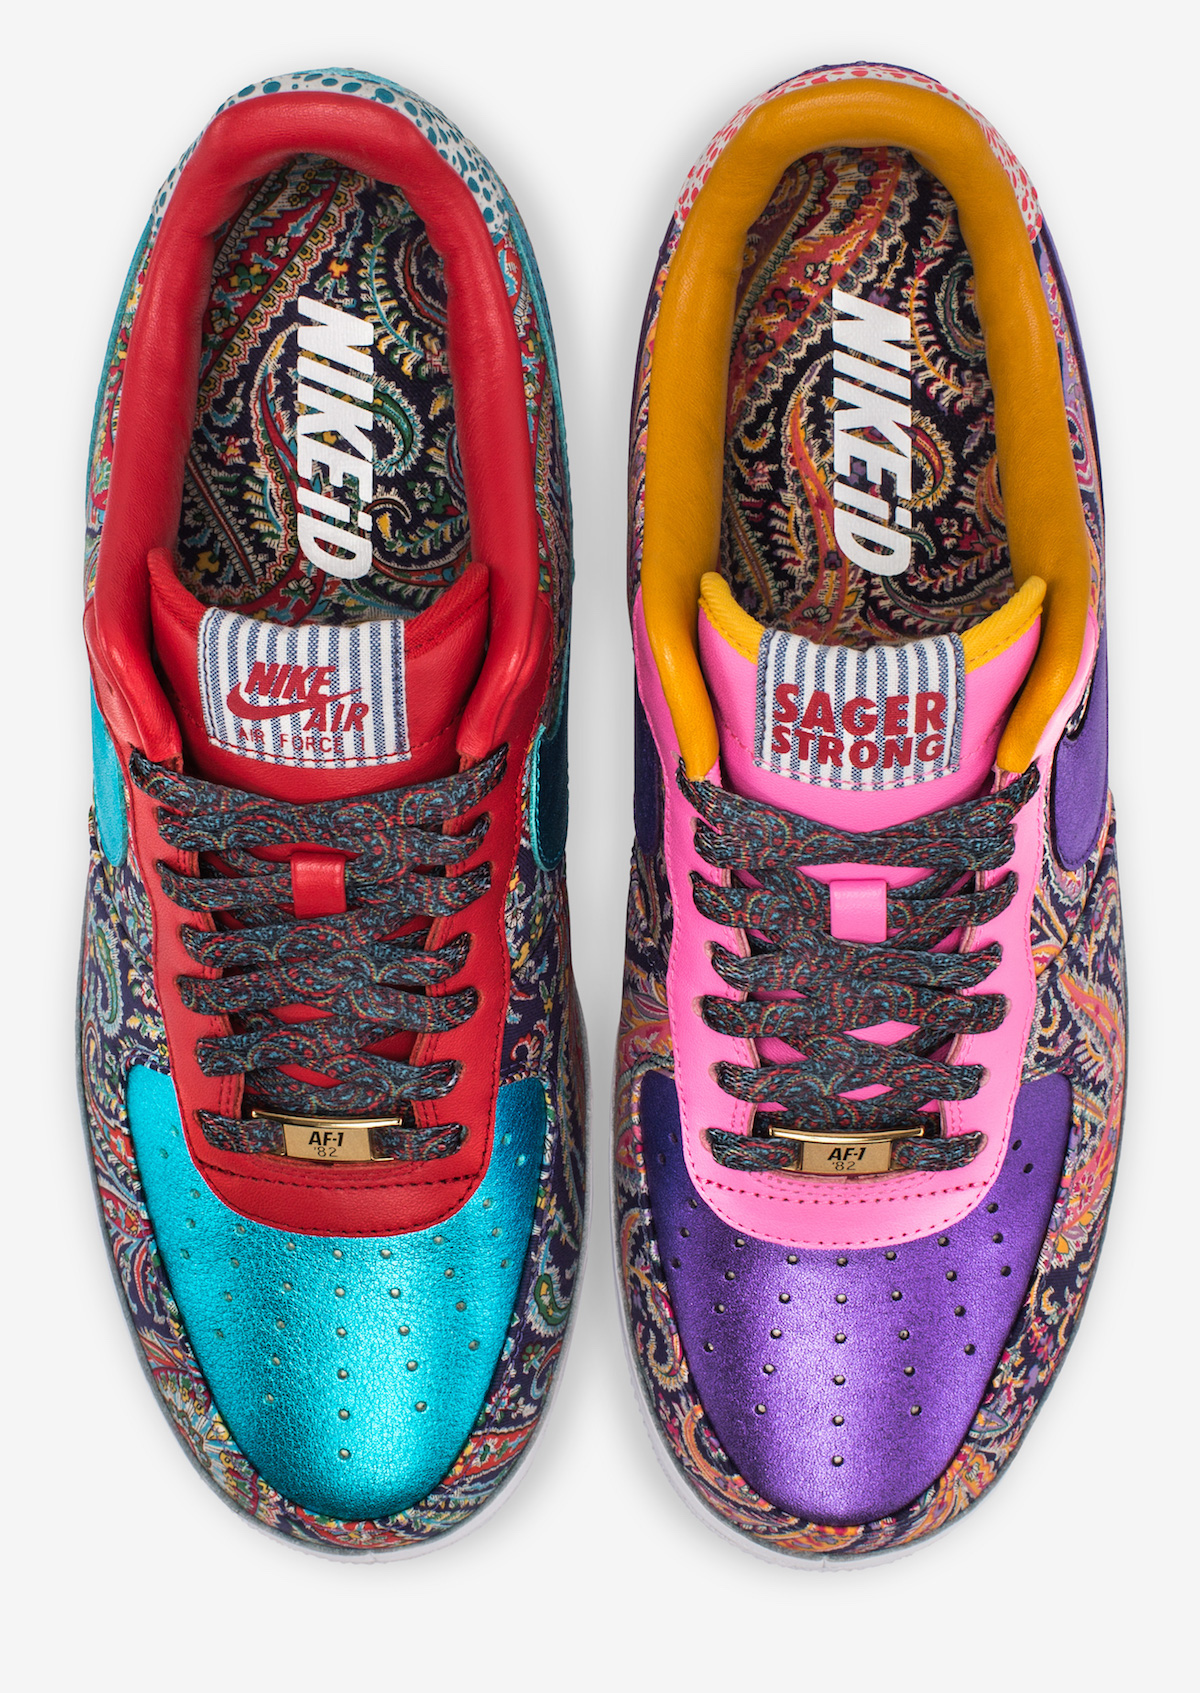 sagerstrong nike air force one 3